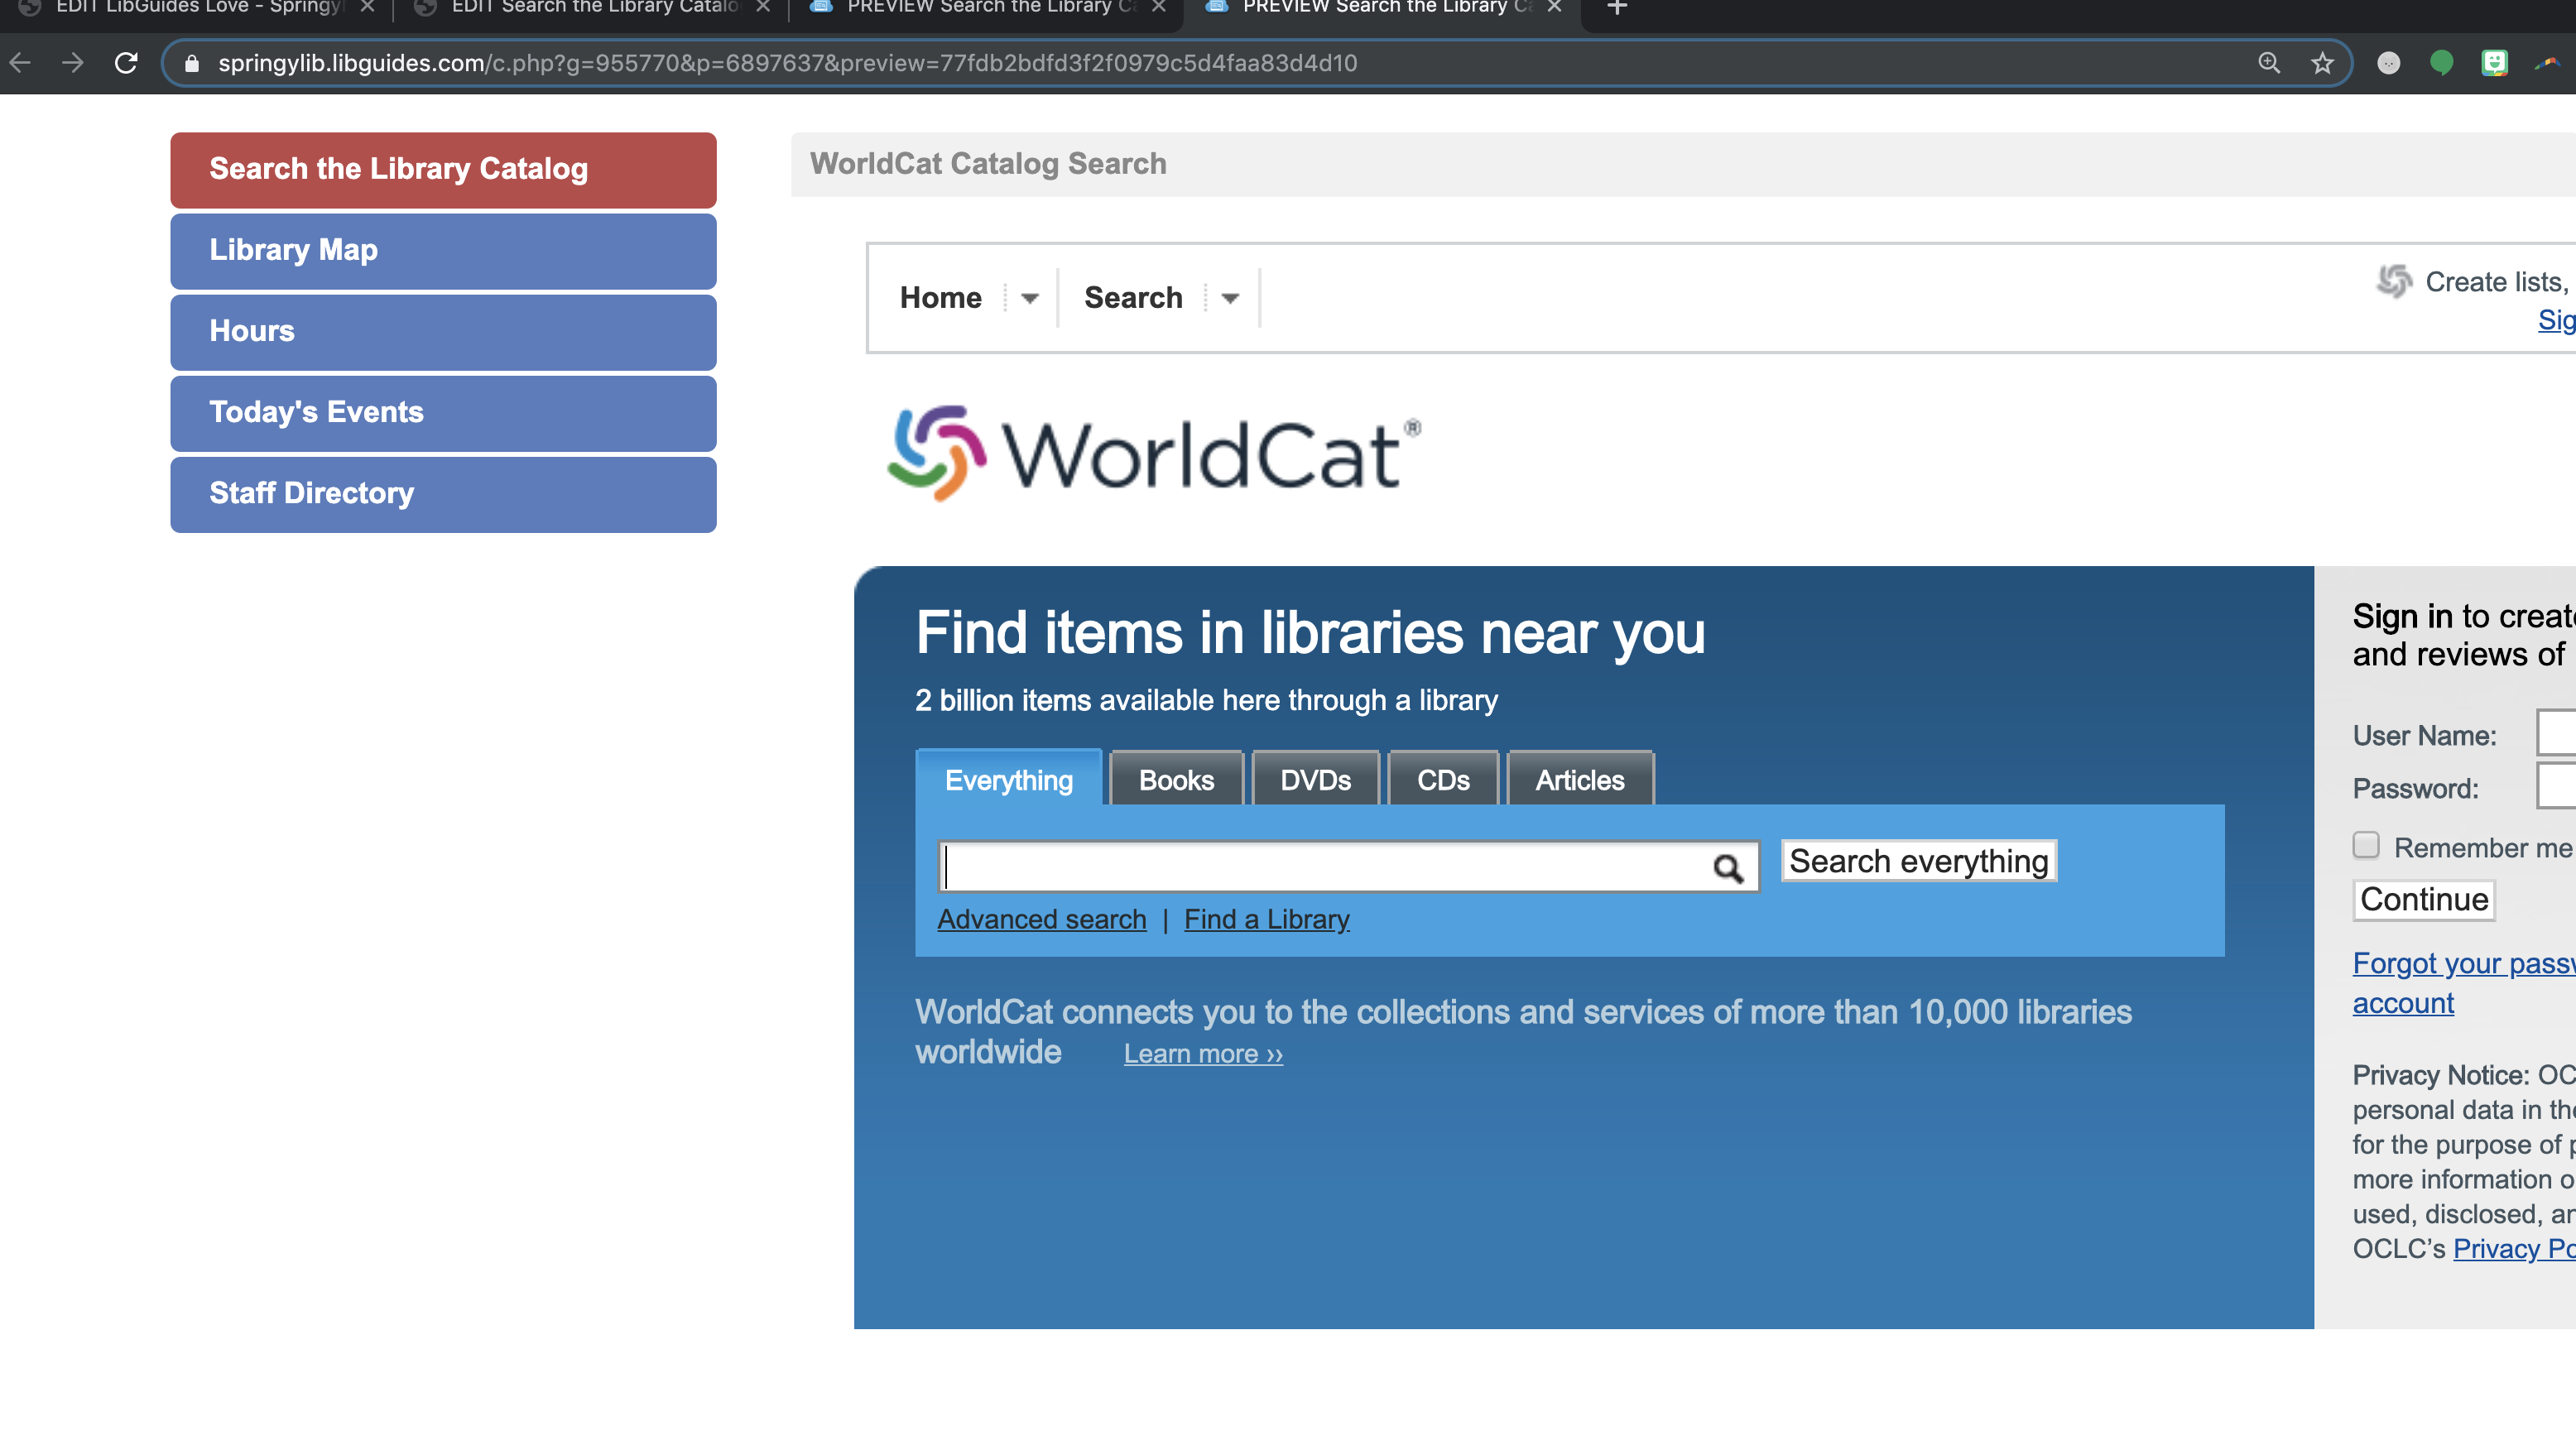 kiosk guide page showing worldcat catalog search